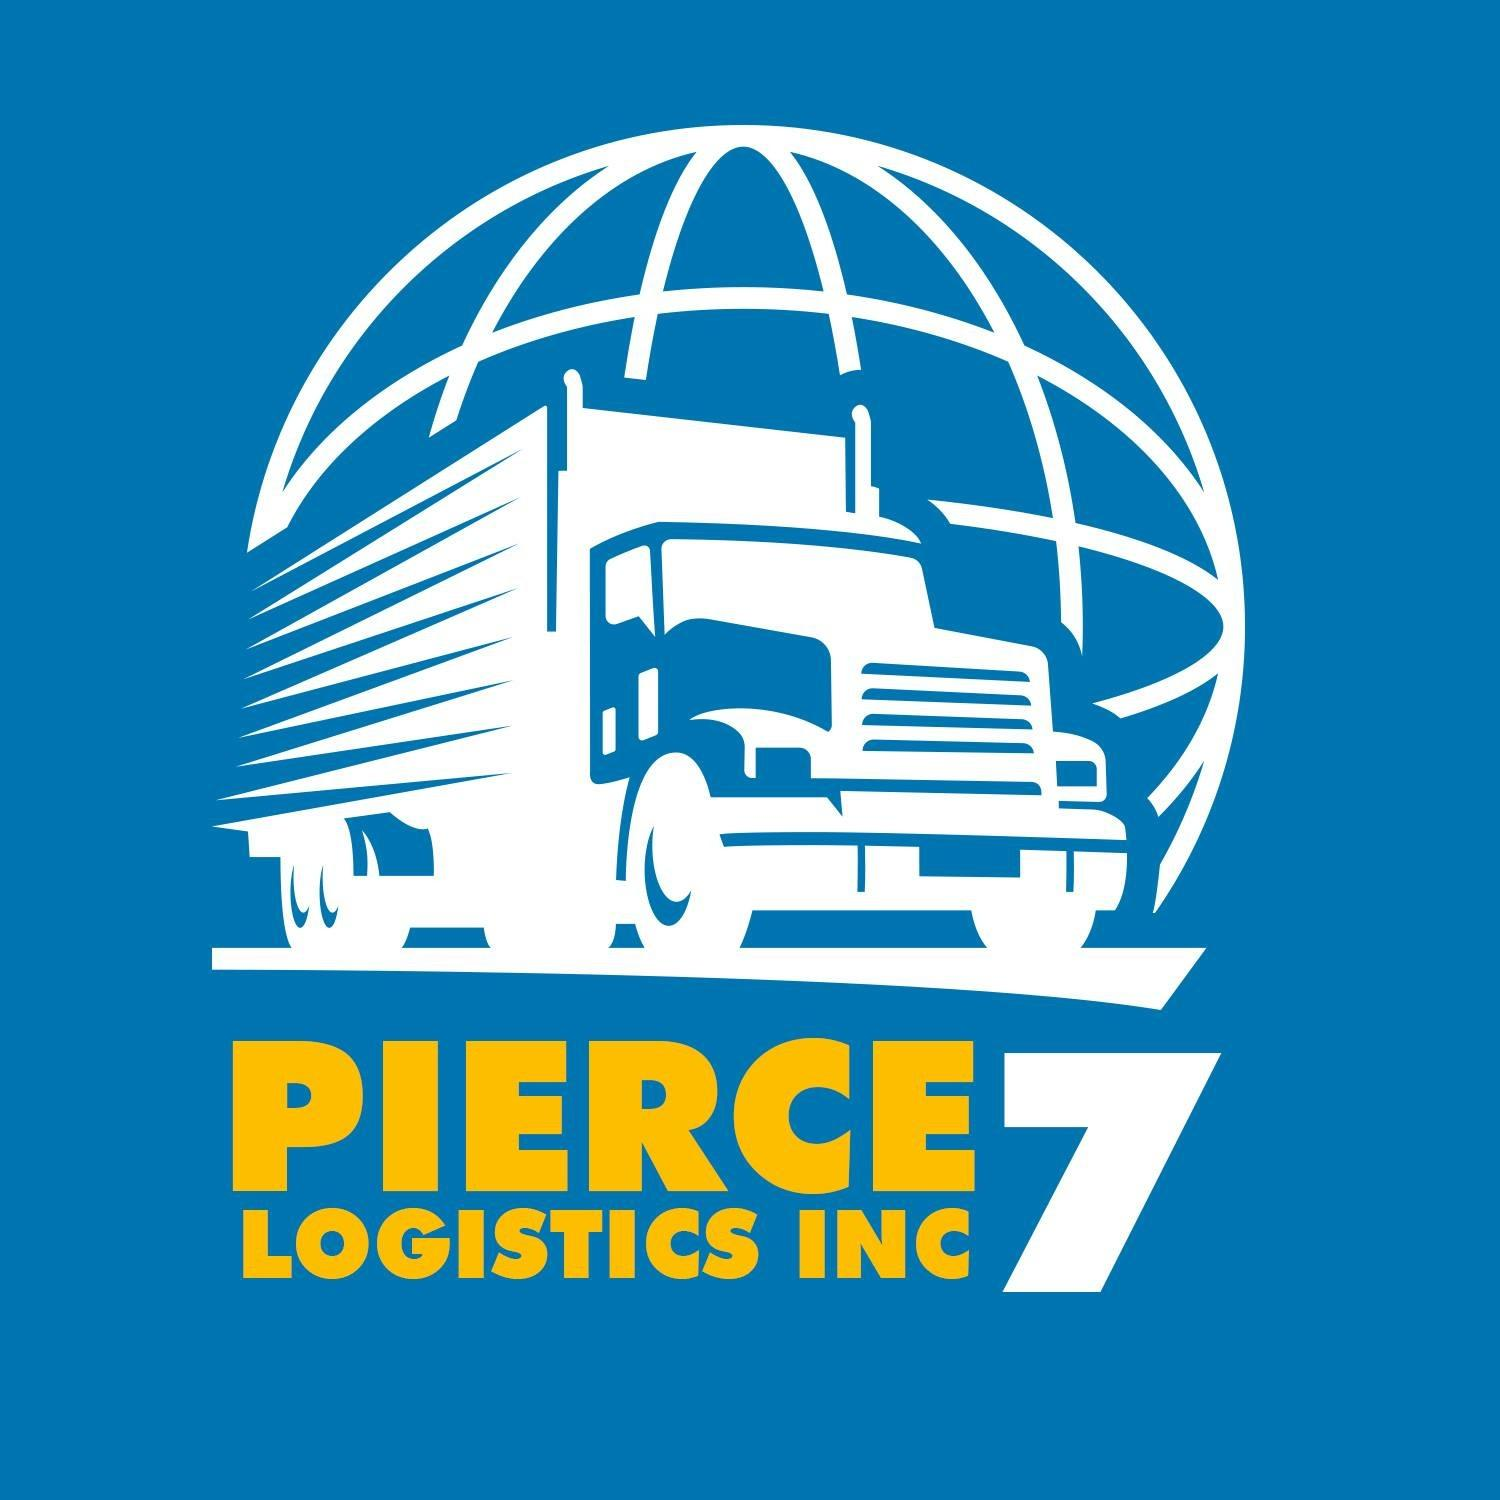 Pierce 7 Logistics Inc.